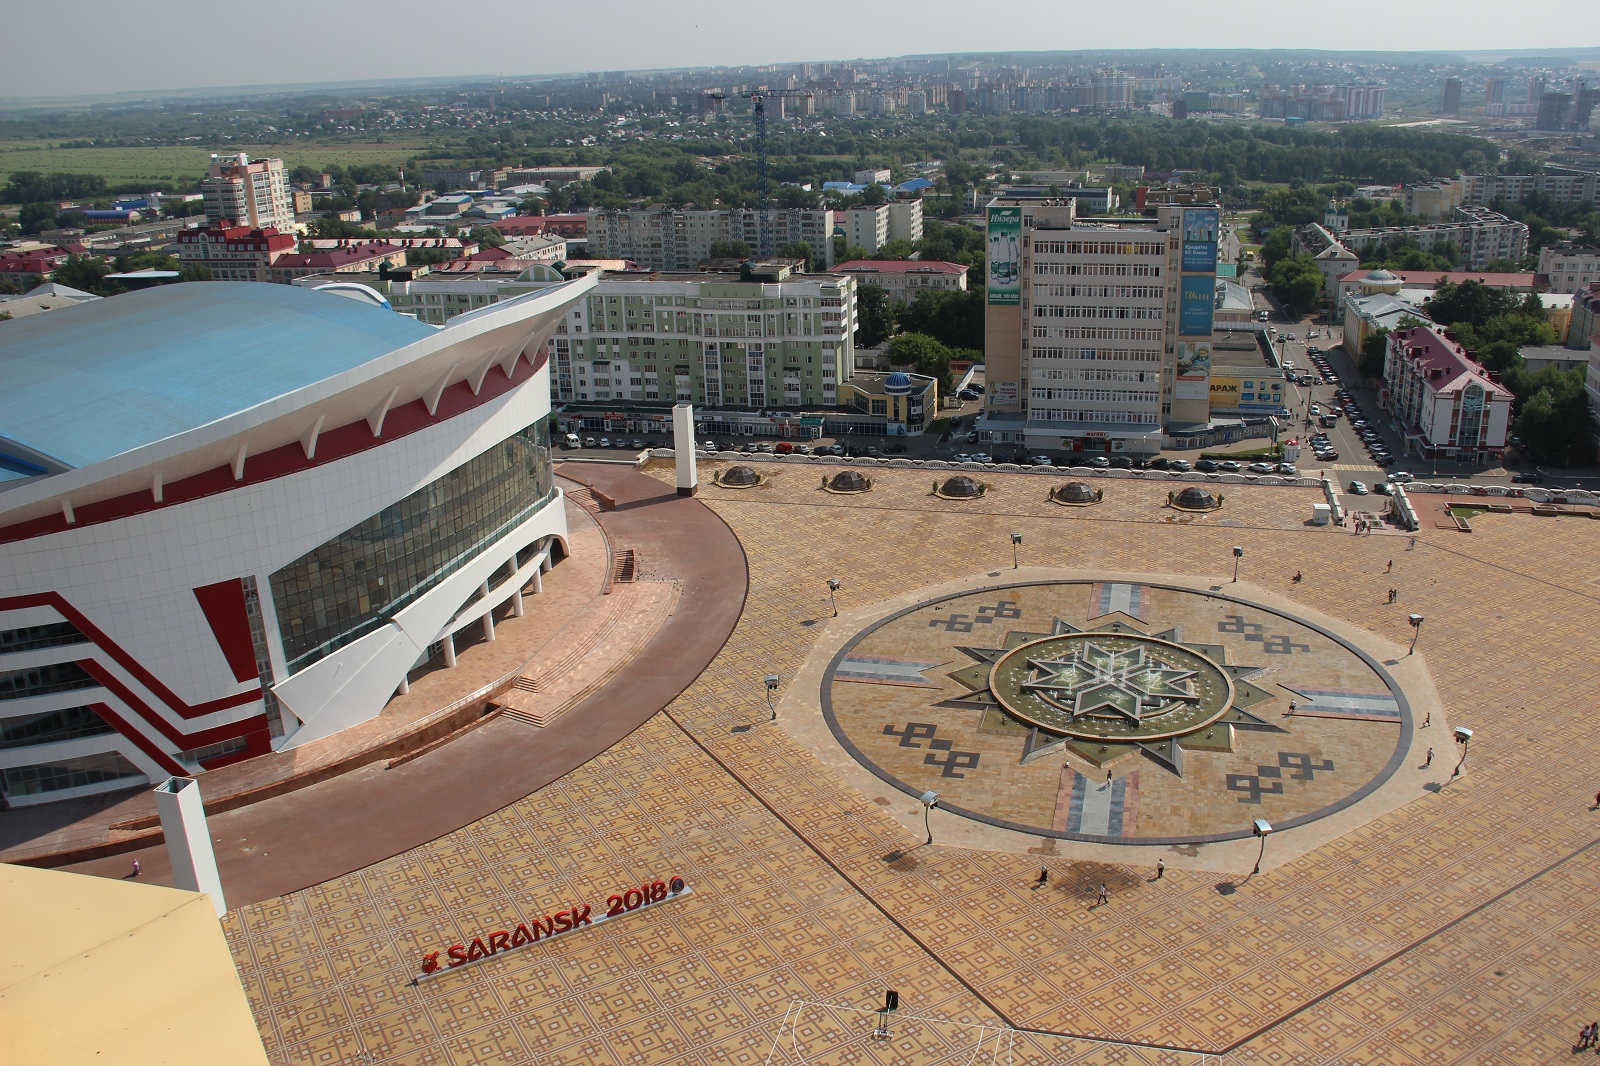 Millennium_Square_established_in_2012_when_the_city_marked_the_1000th_anniversary_of_the_unification_of_the_Mordvins_and_Russians.JPG